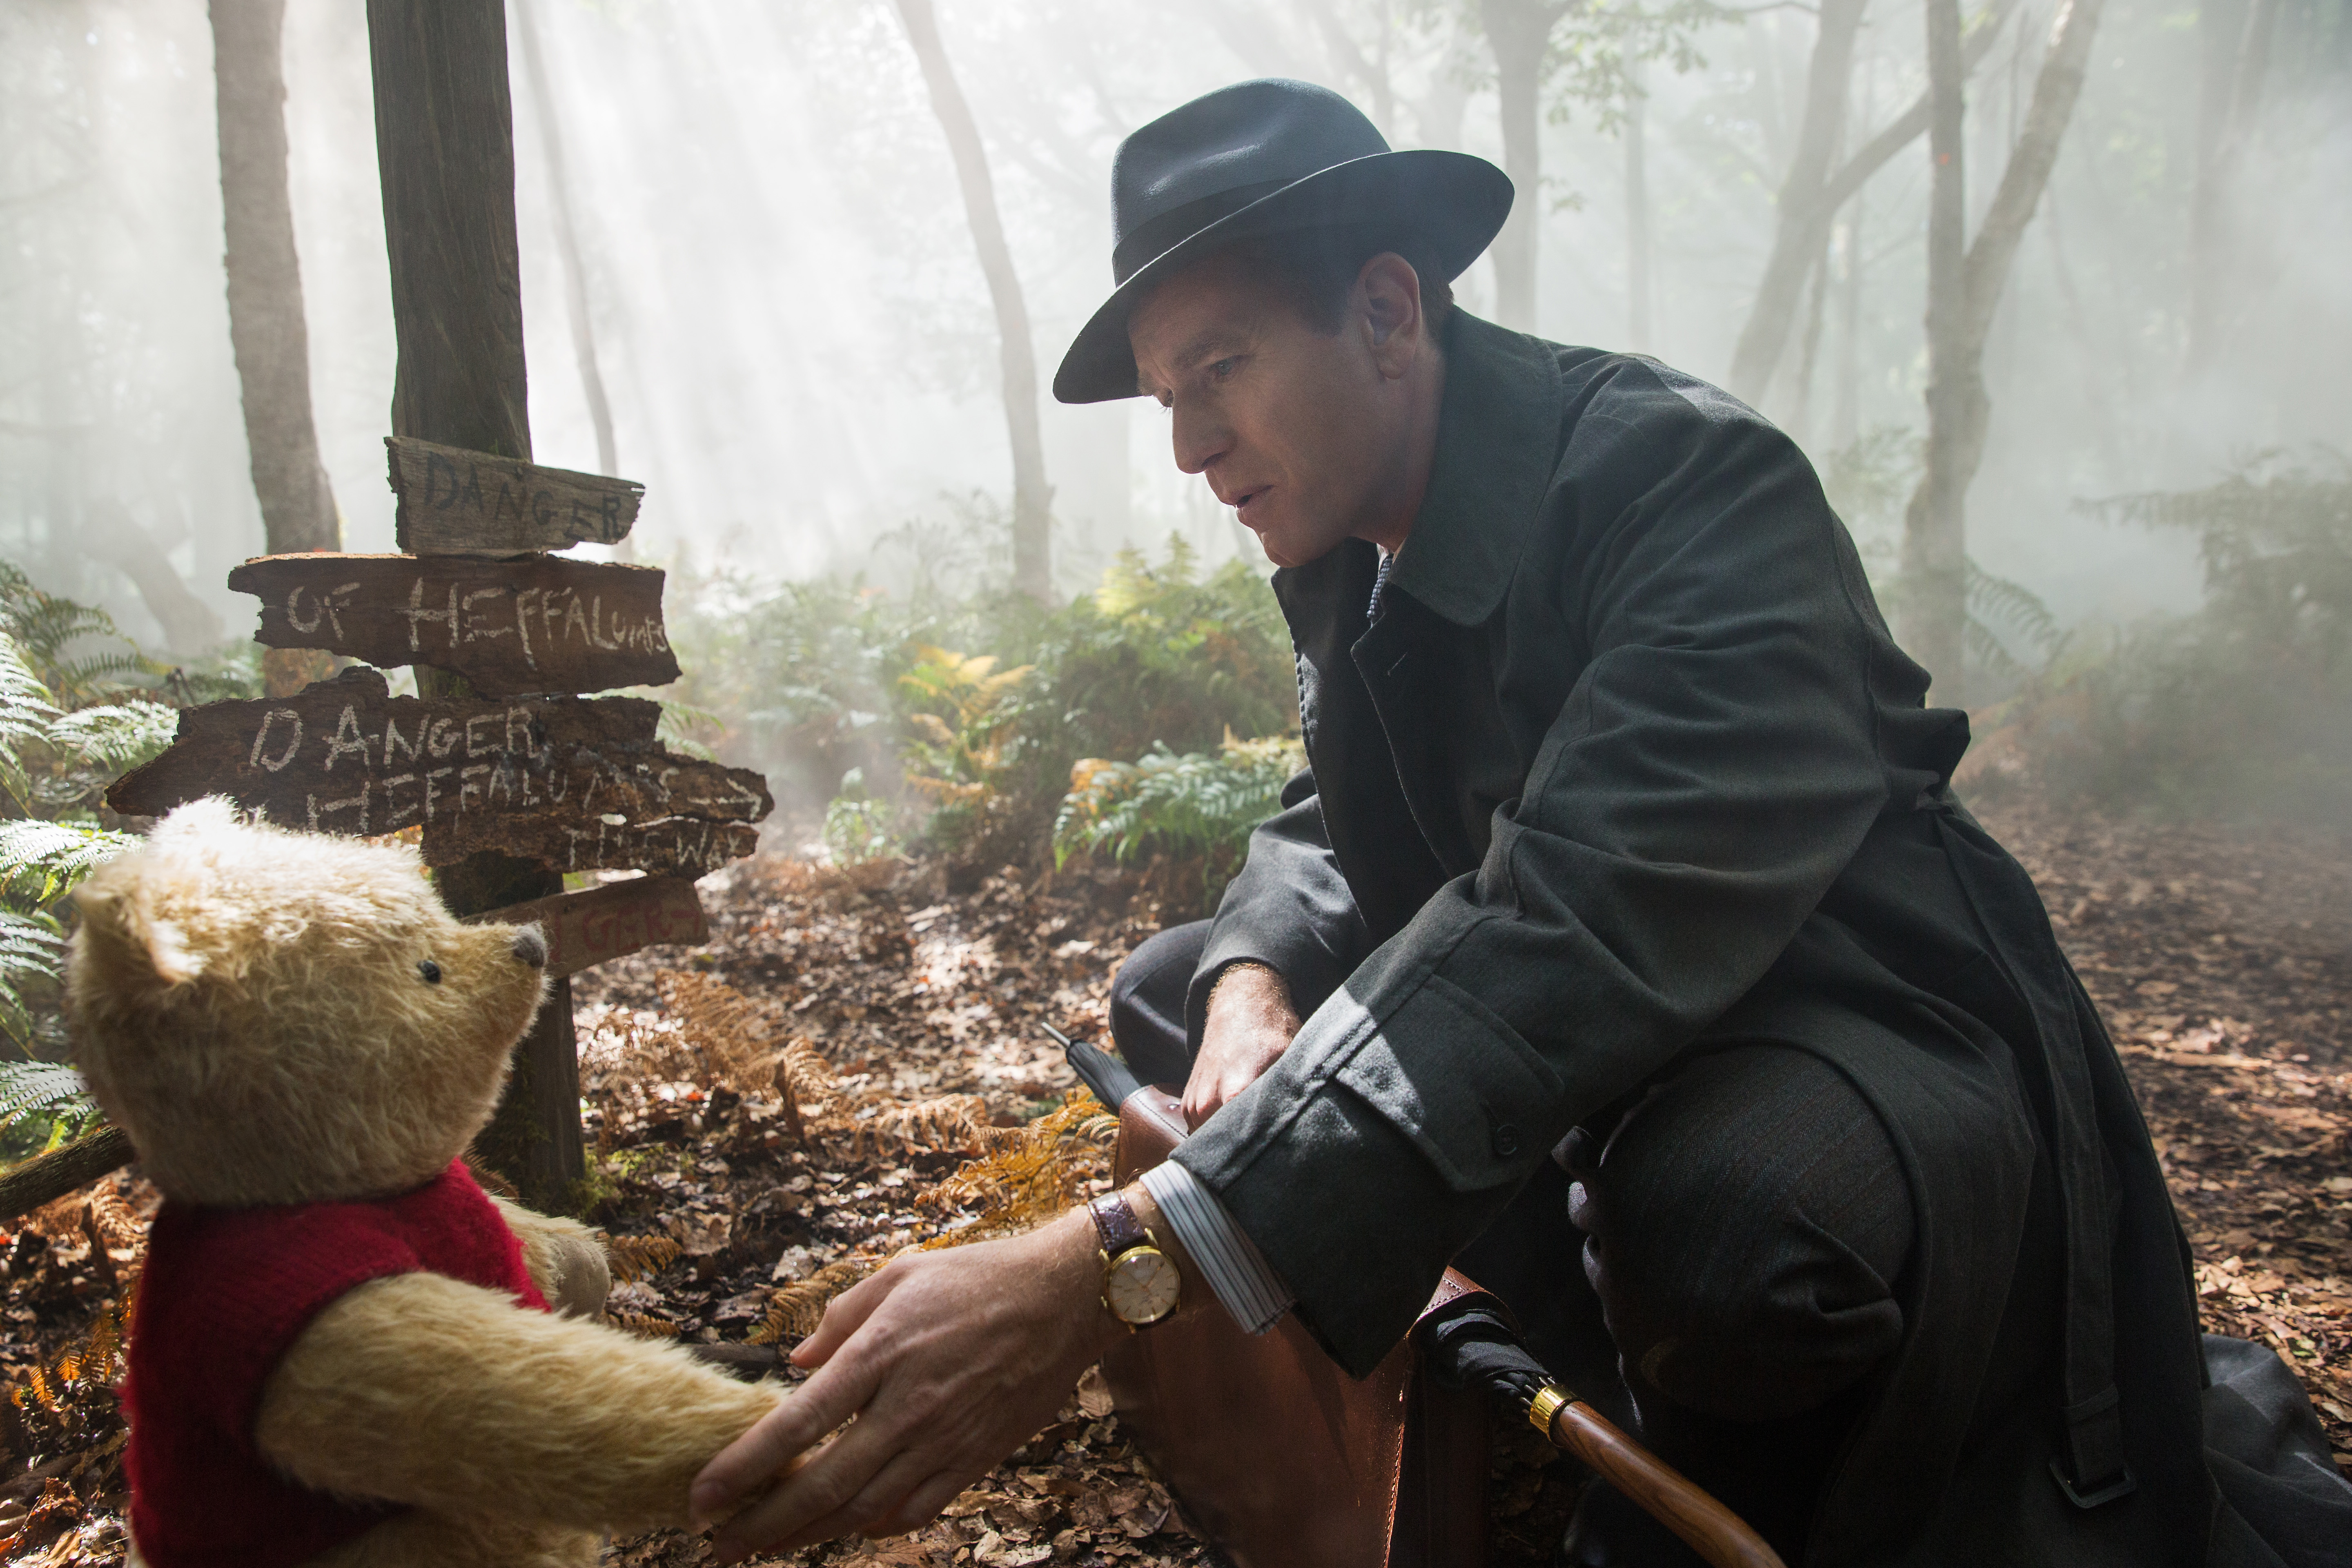 Christopher Robin is a corporate cash-in, but it fakes sincerity better than most